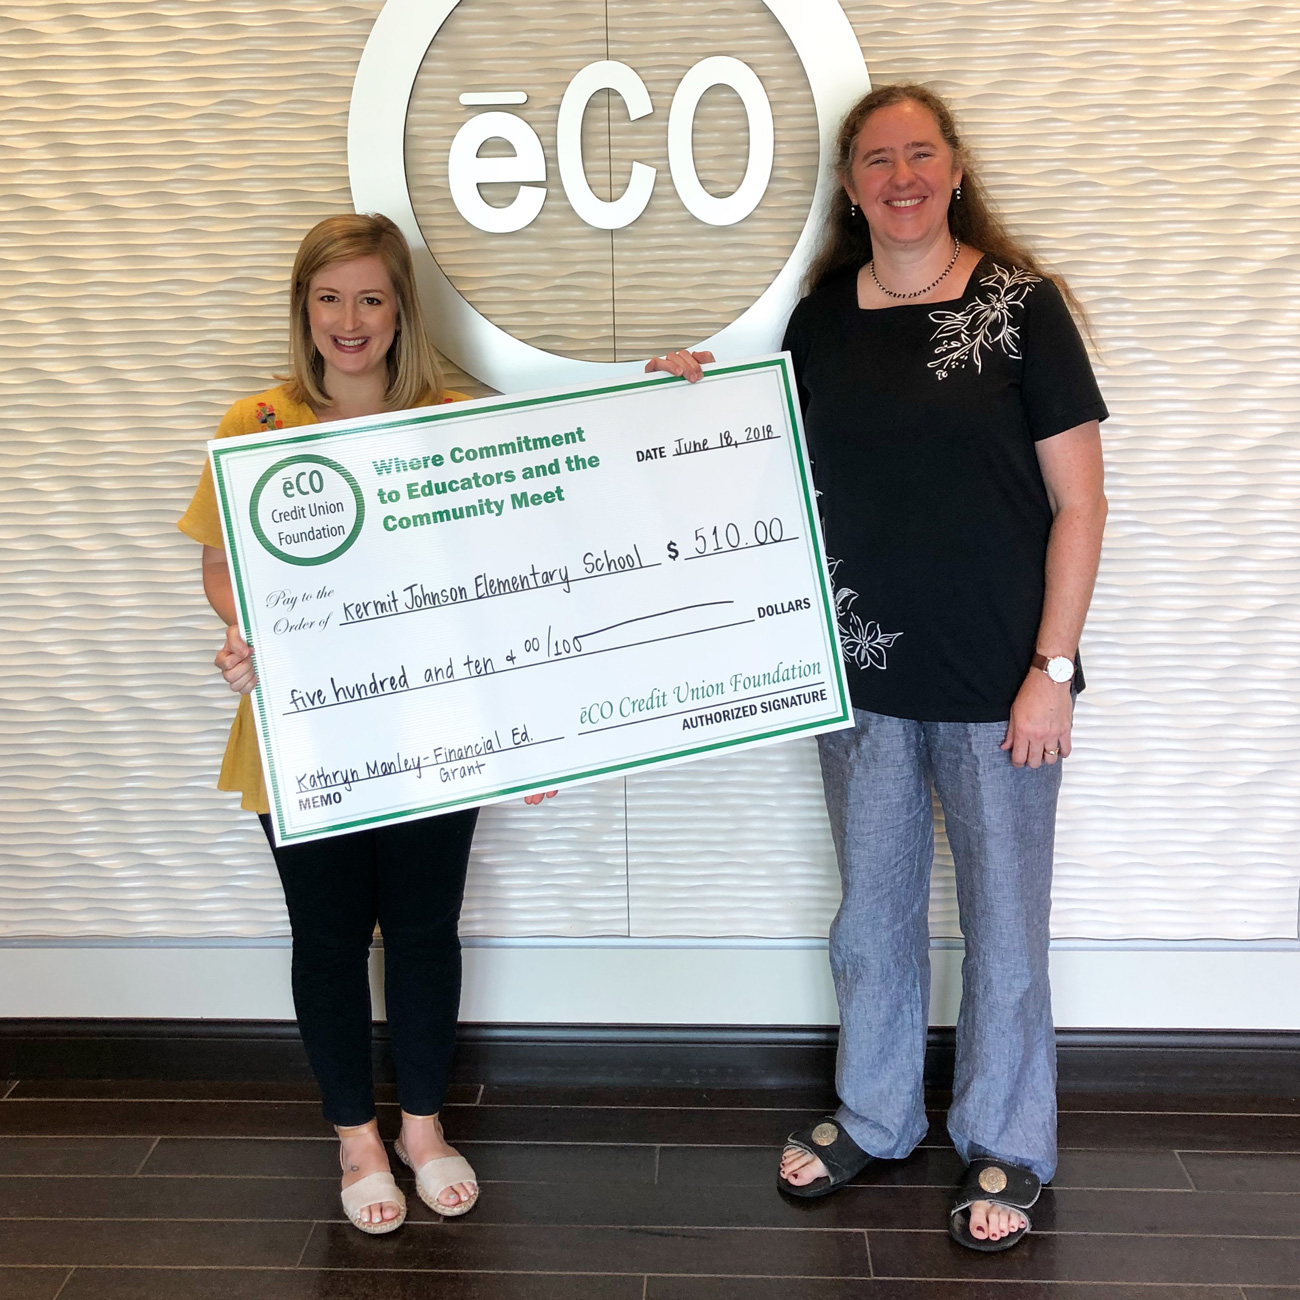 Photo of Melissa Stewart, eCO's Marketing Director, presenting Kathryn Manley with a financial education grant.